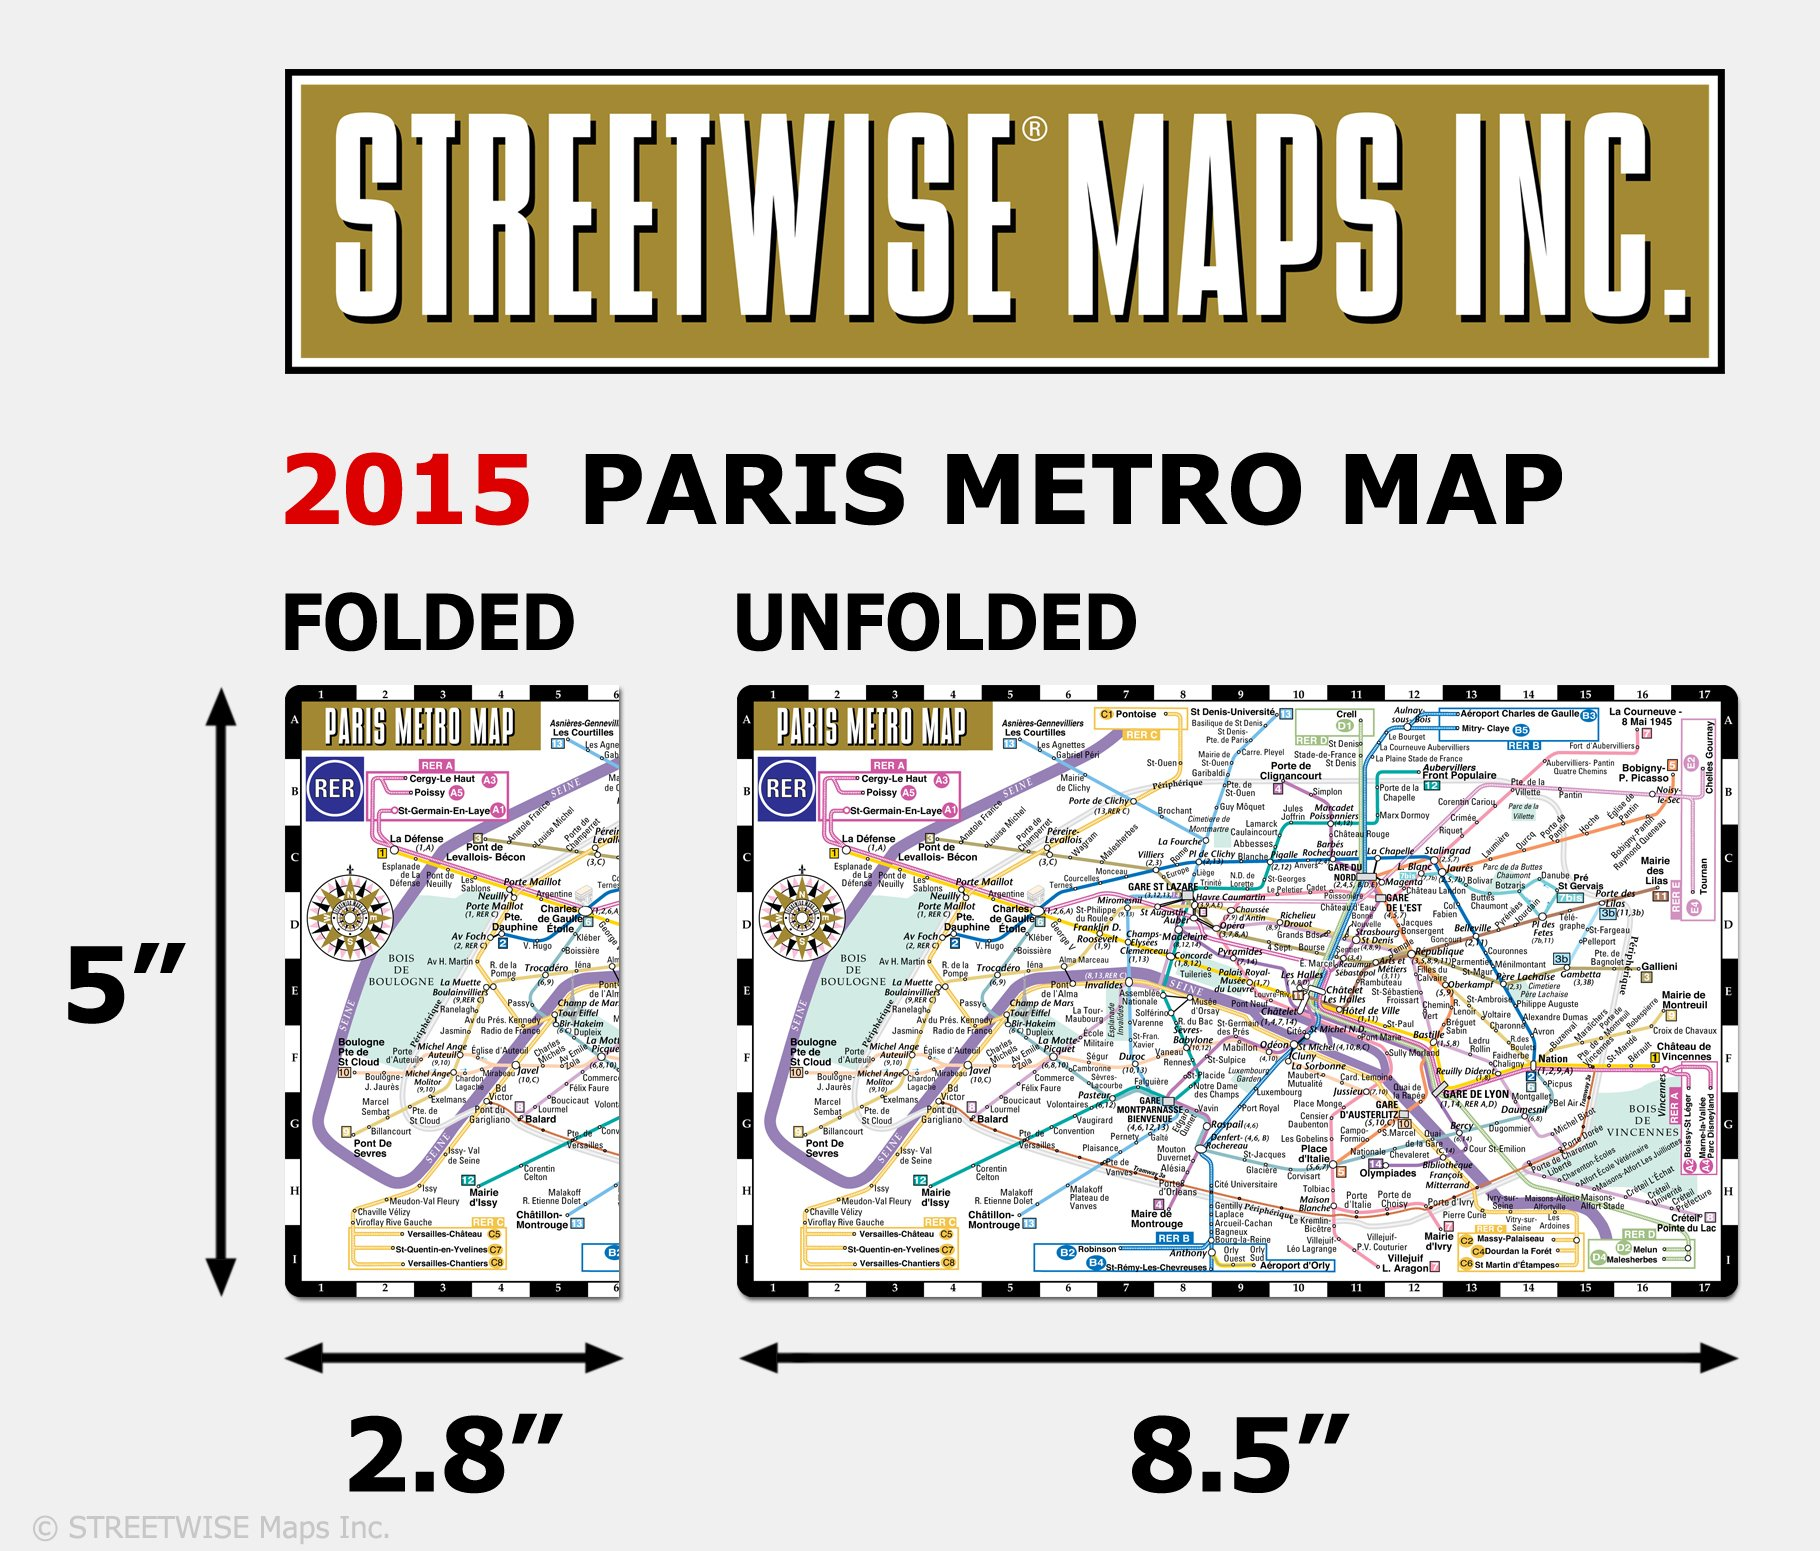 streetwise paris metro map laminated subway paris map rer system for travel pocket size streetwise maps inc 9781931257688 amazoncom books